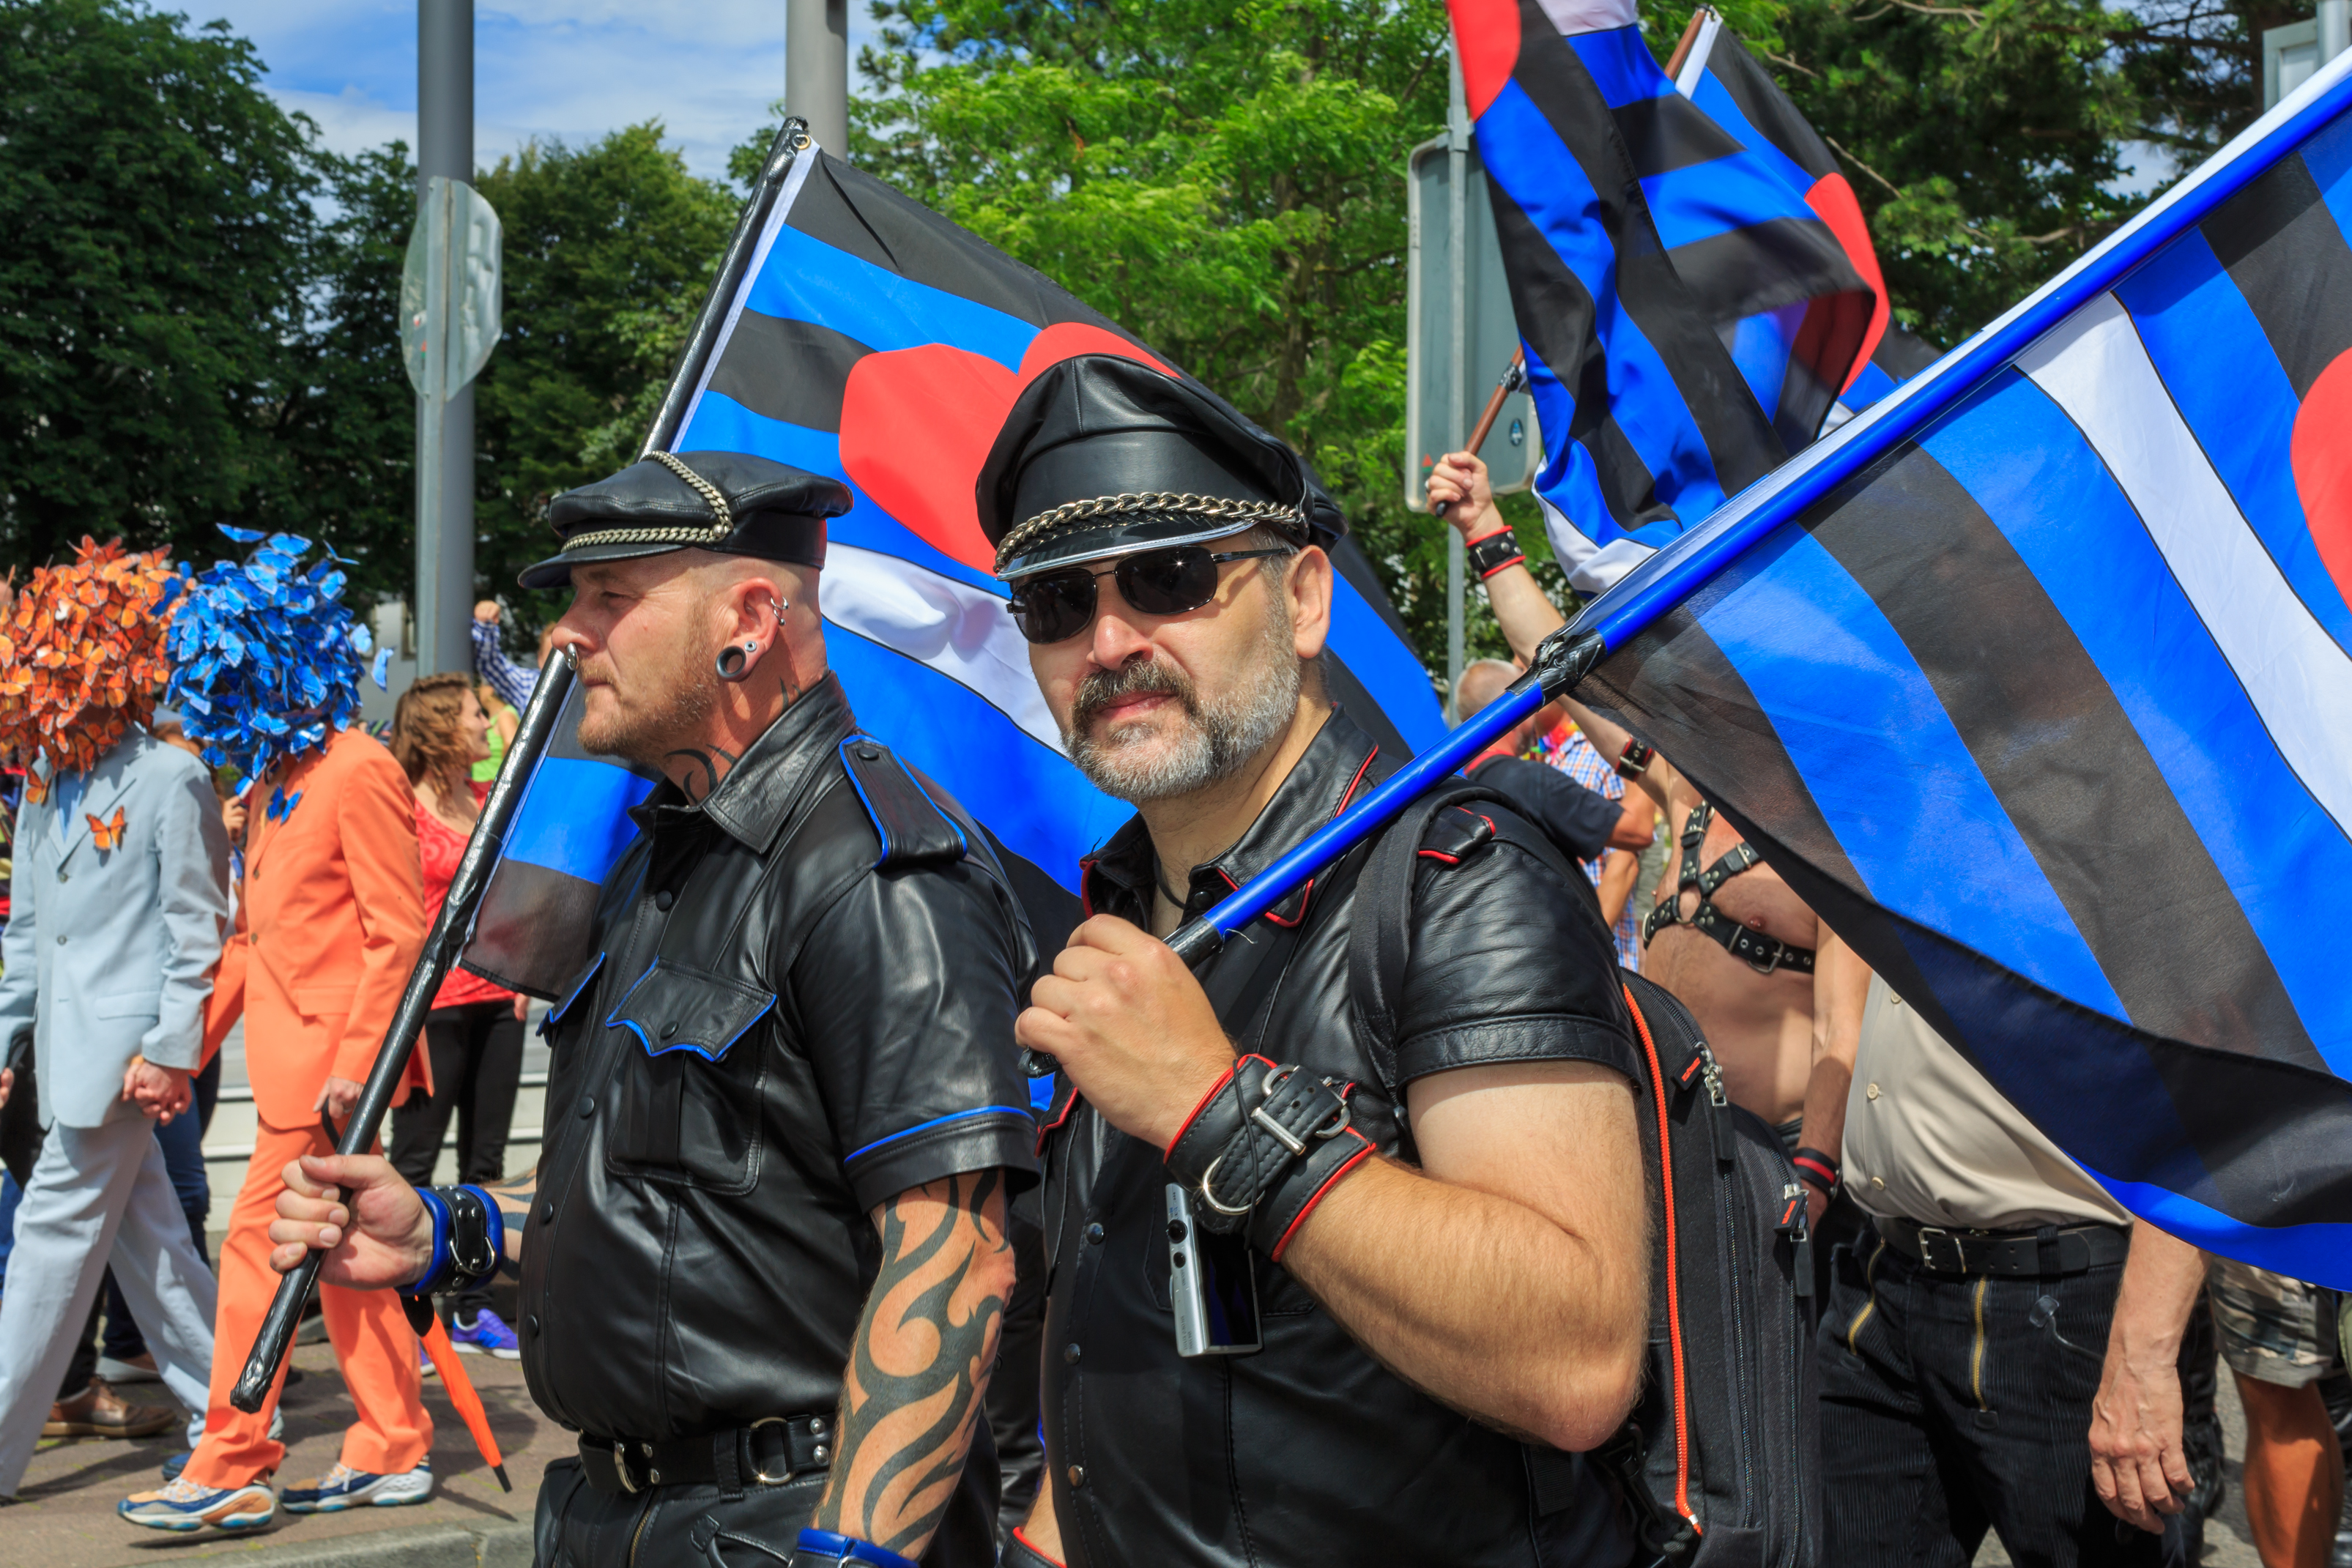 Cologne_Germany_Cologne-Gay-Pride-2014_Parade-13.jpg